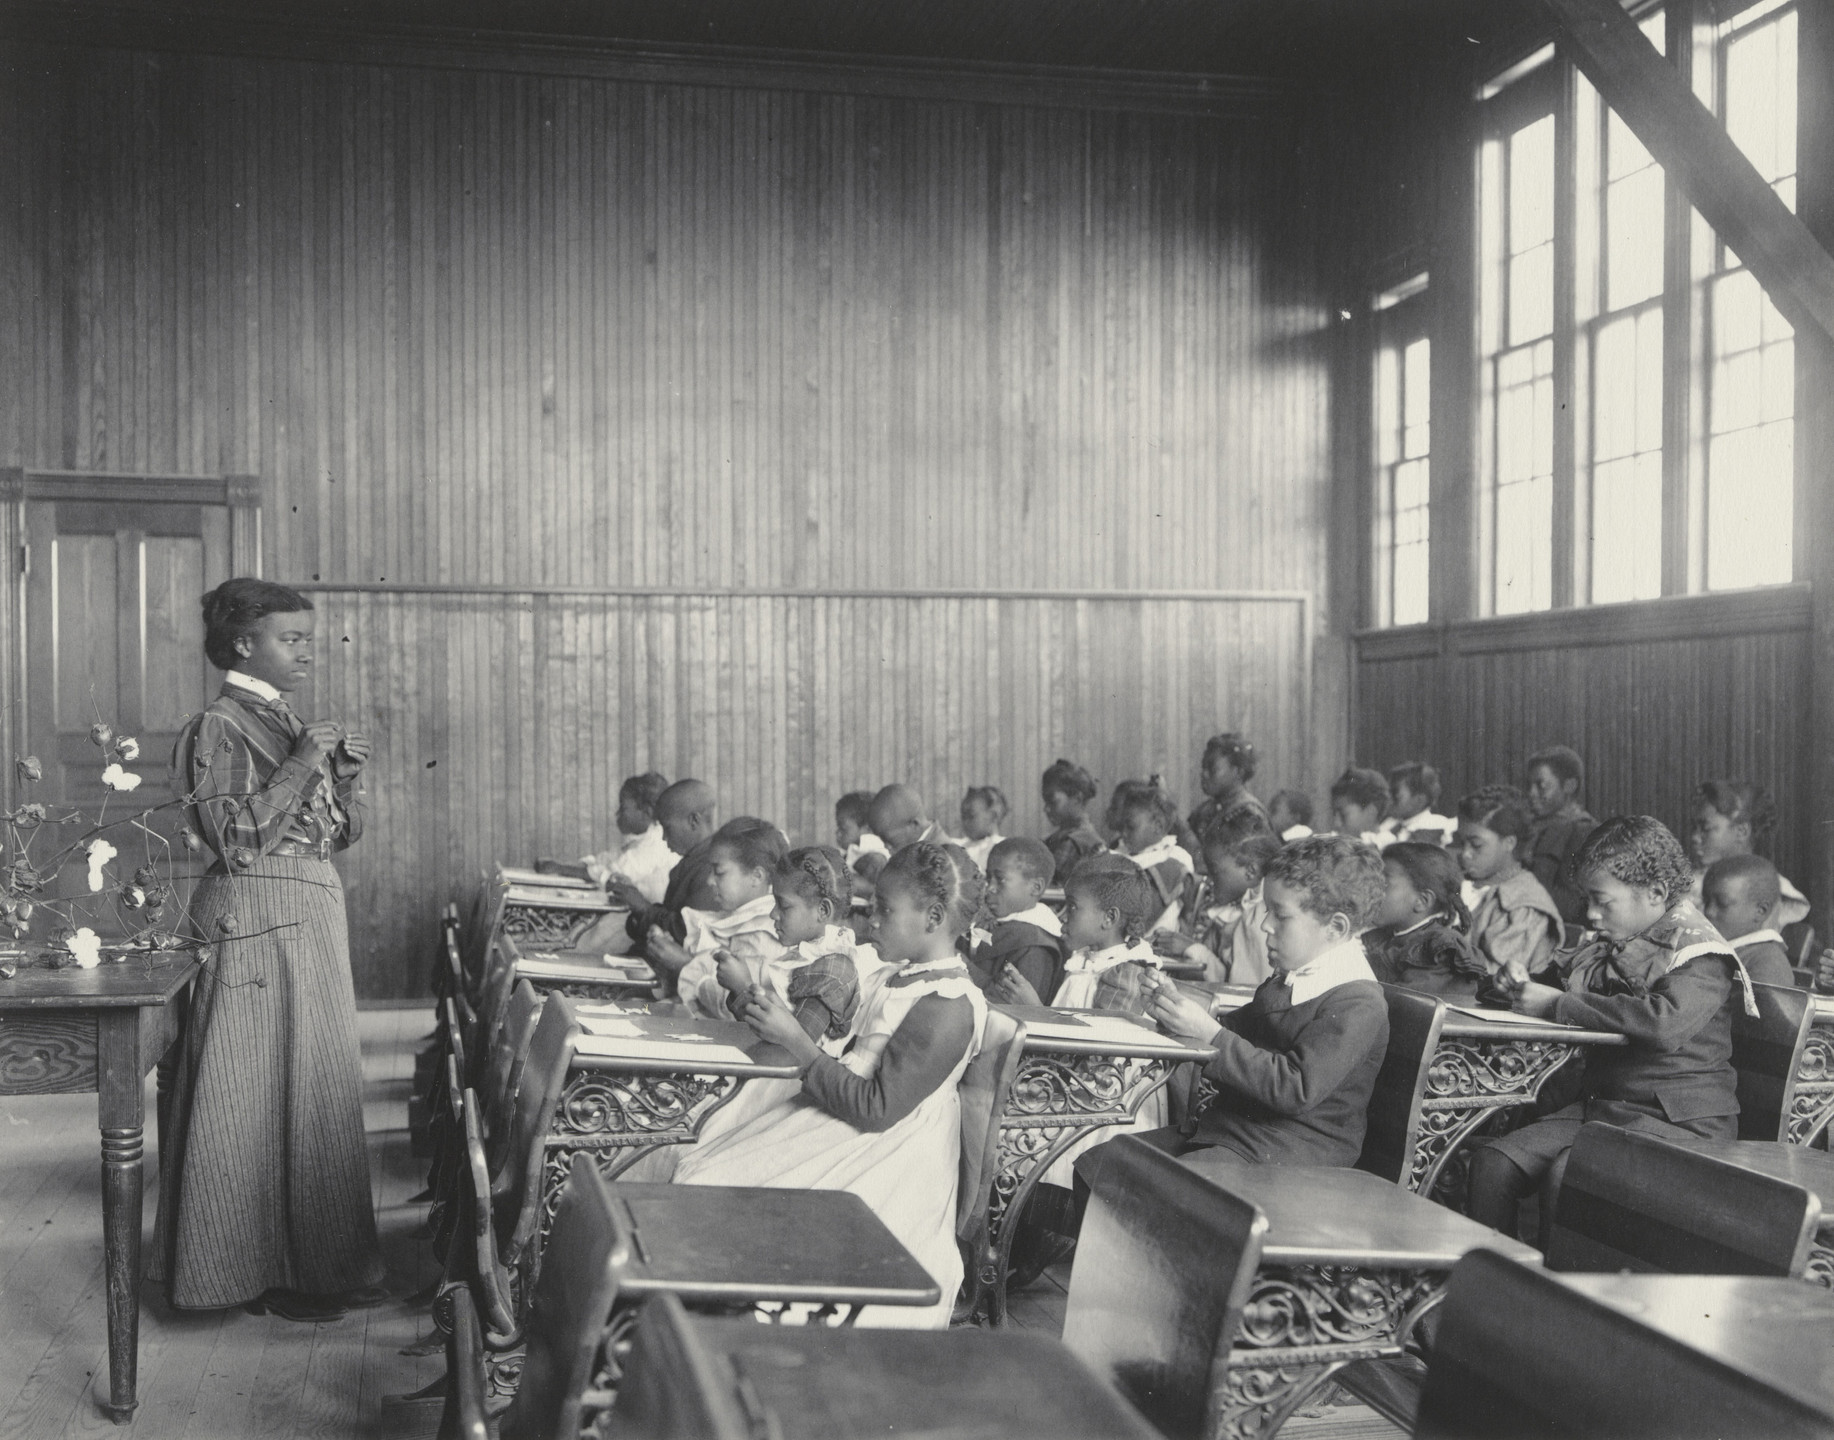 Frances Benjamin Johnston. A sewing lesson at the Whittier. 1899-1900